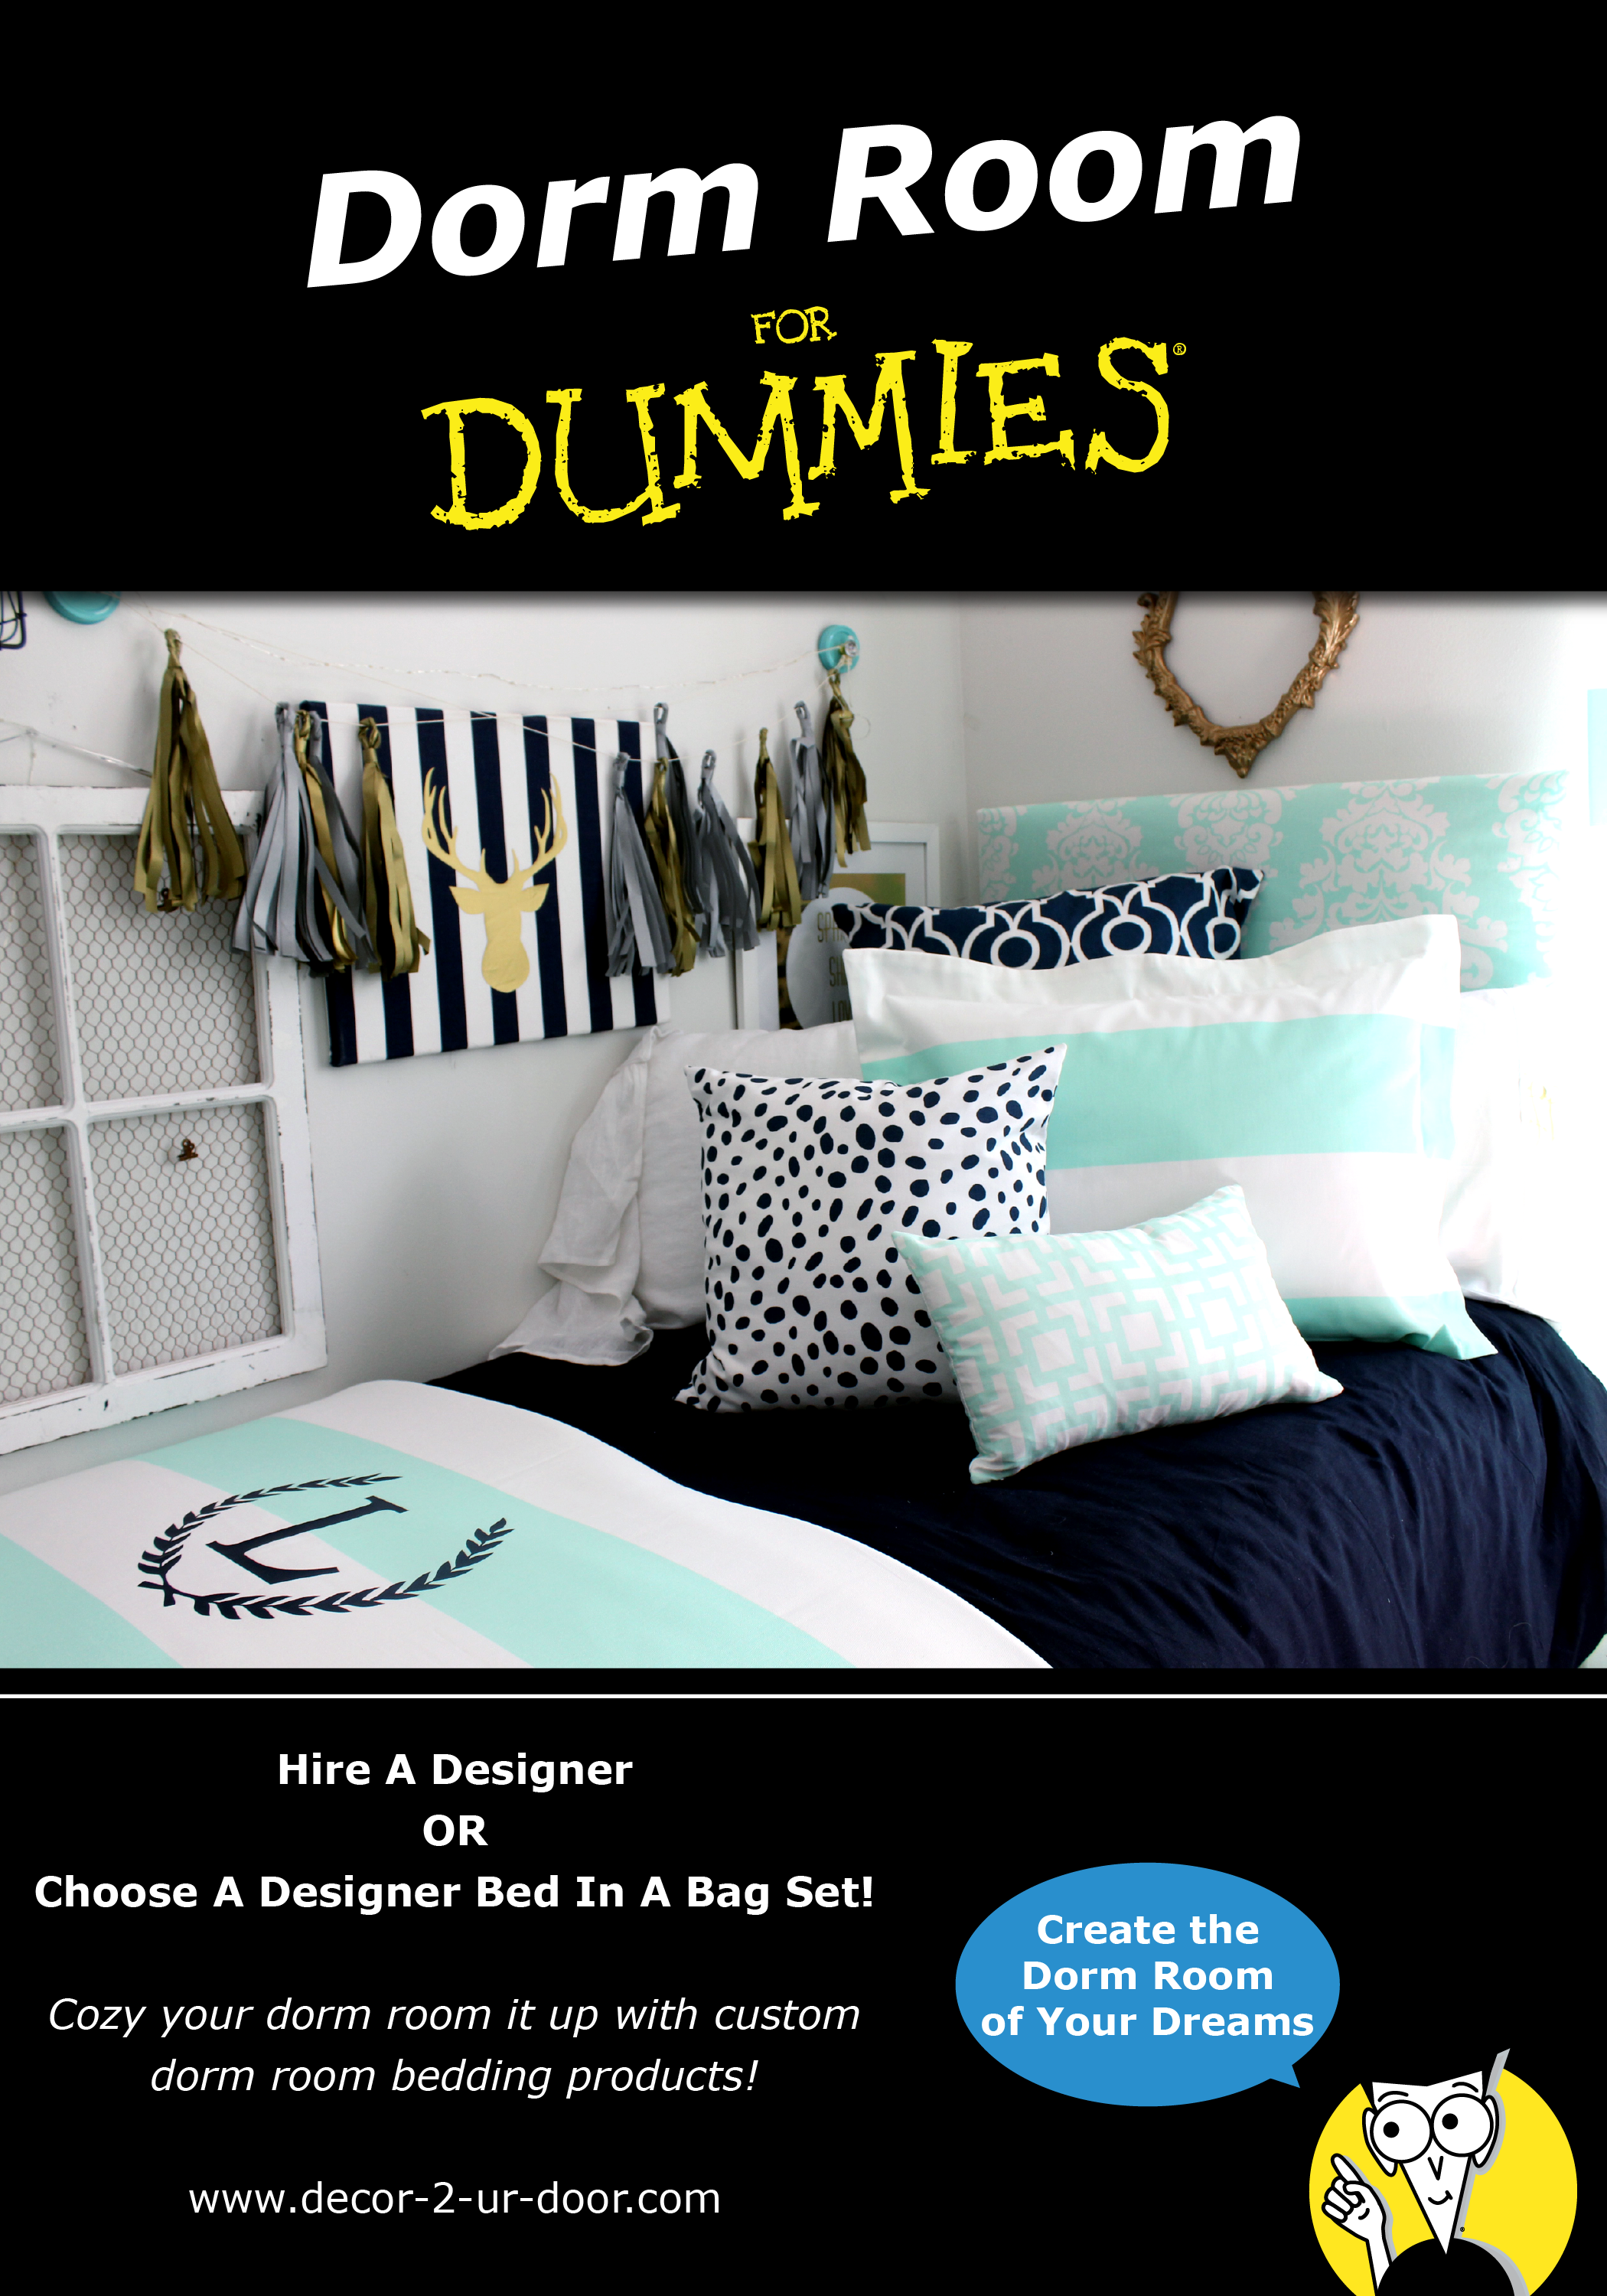 Design Your Own Dorm Room: Preppy Gray Dorm Room Bedding